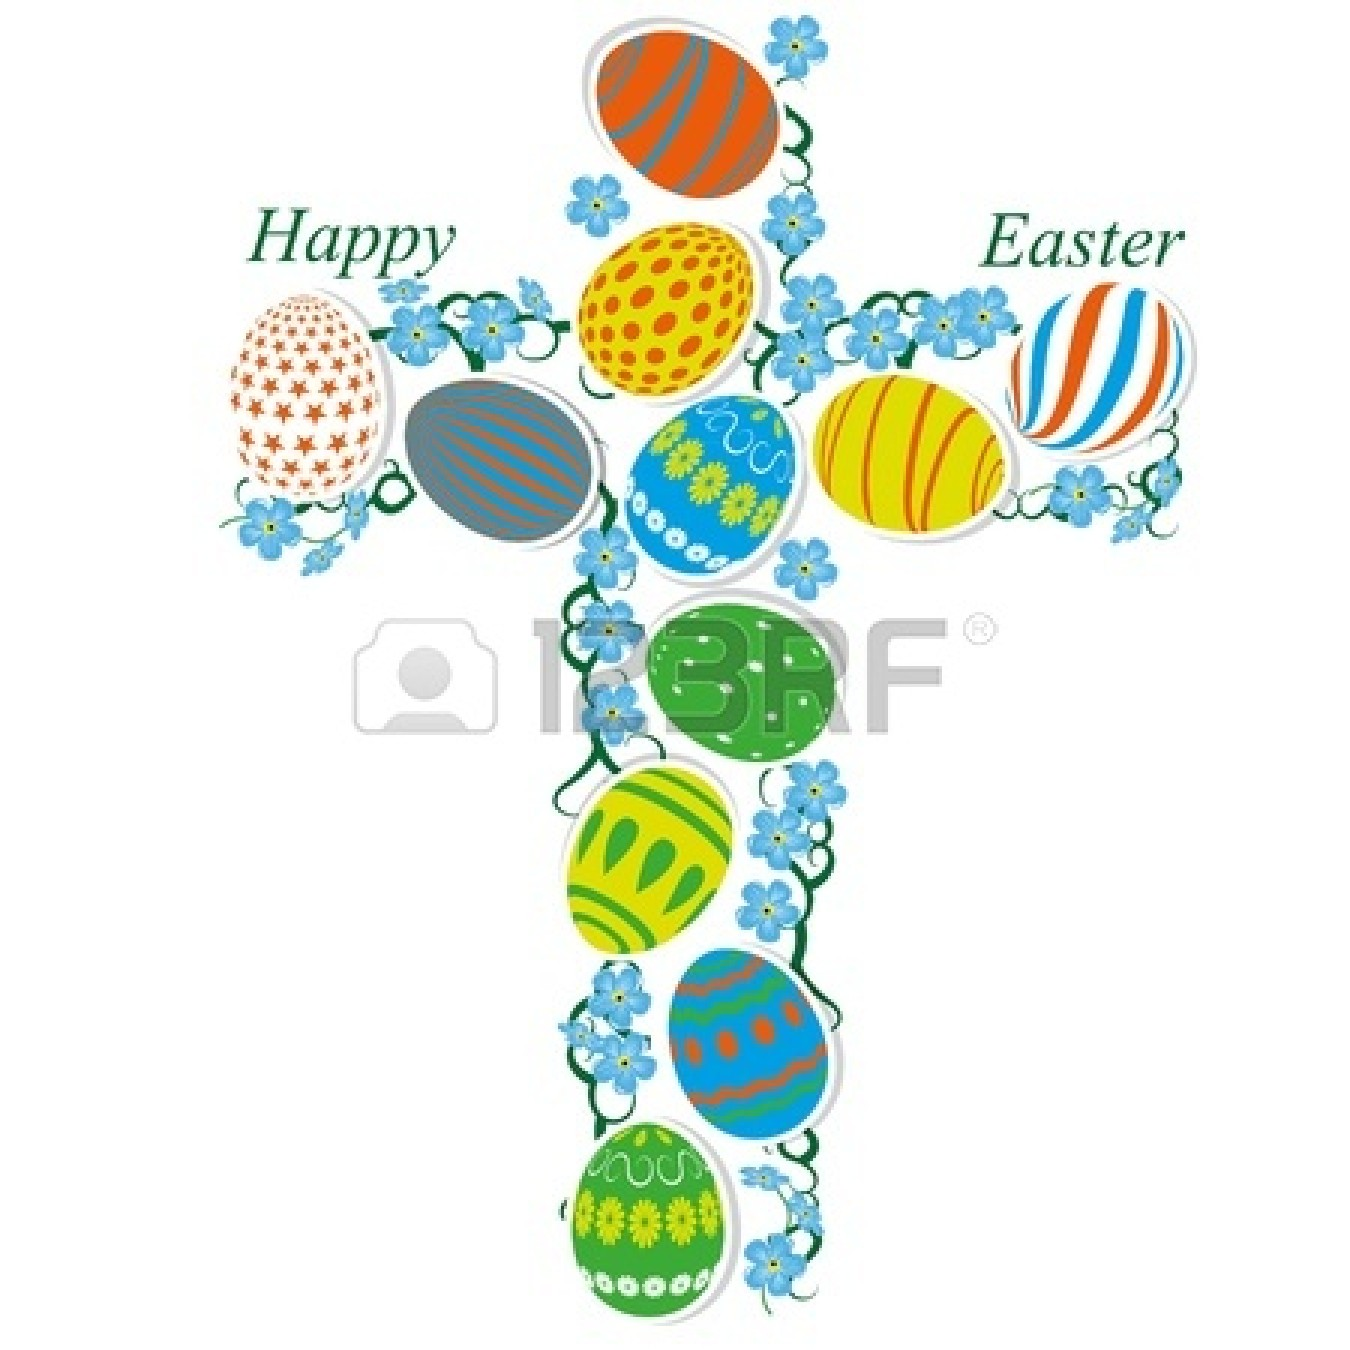 Free cliparts download clip. Catholic clipart easter